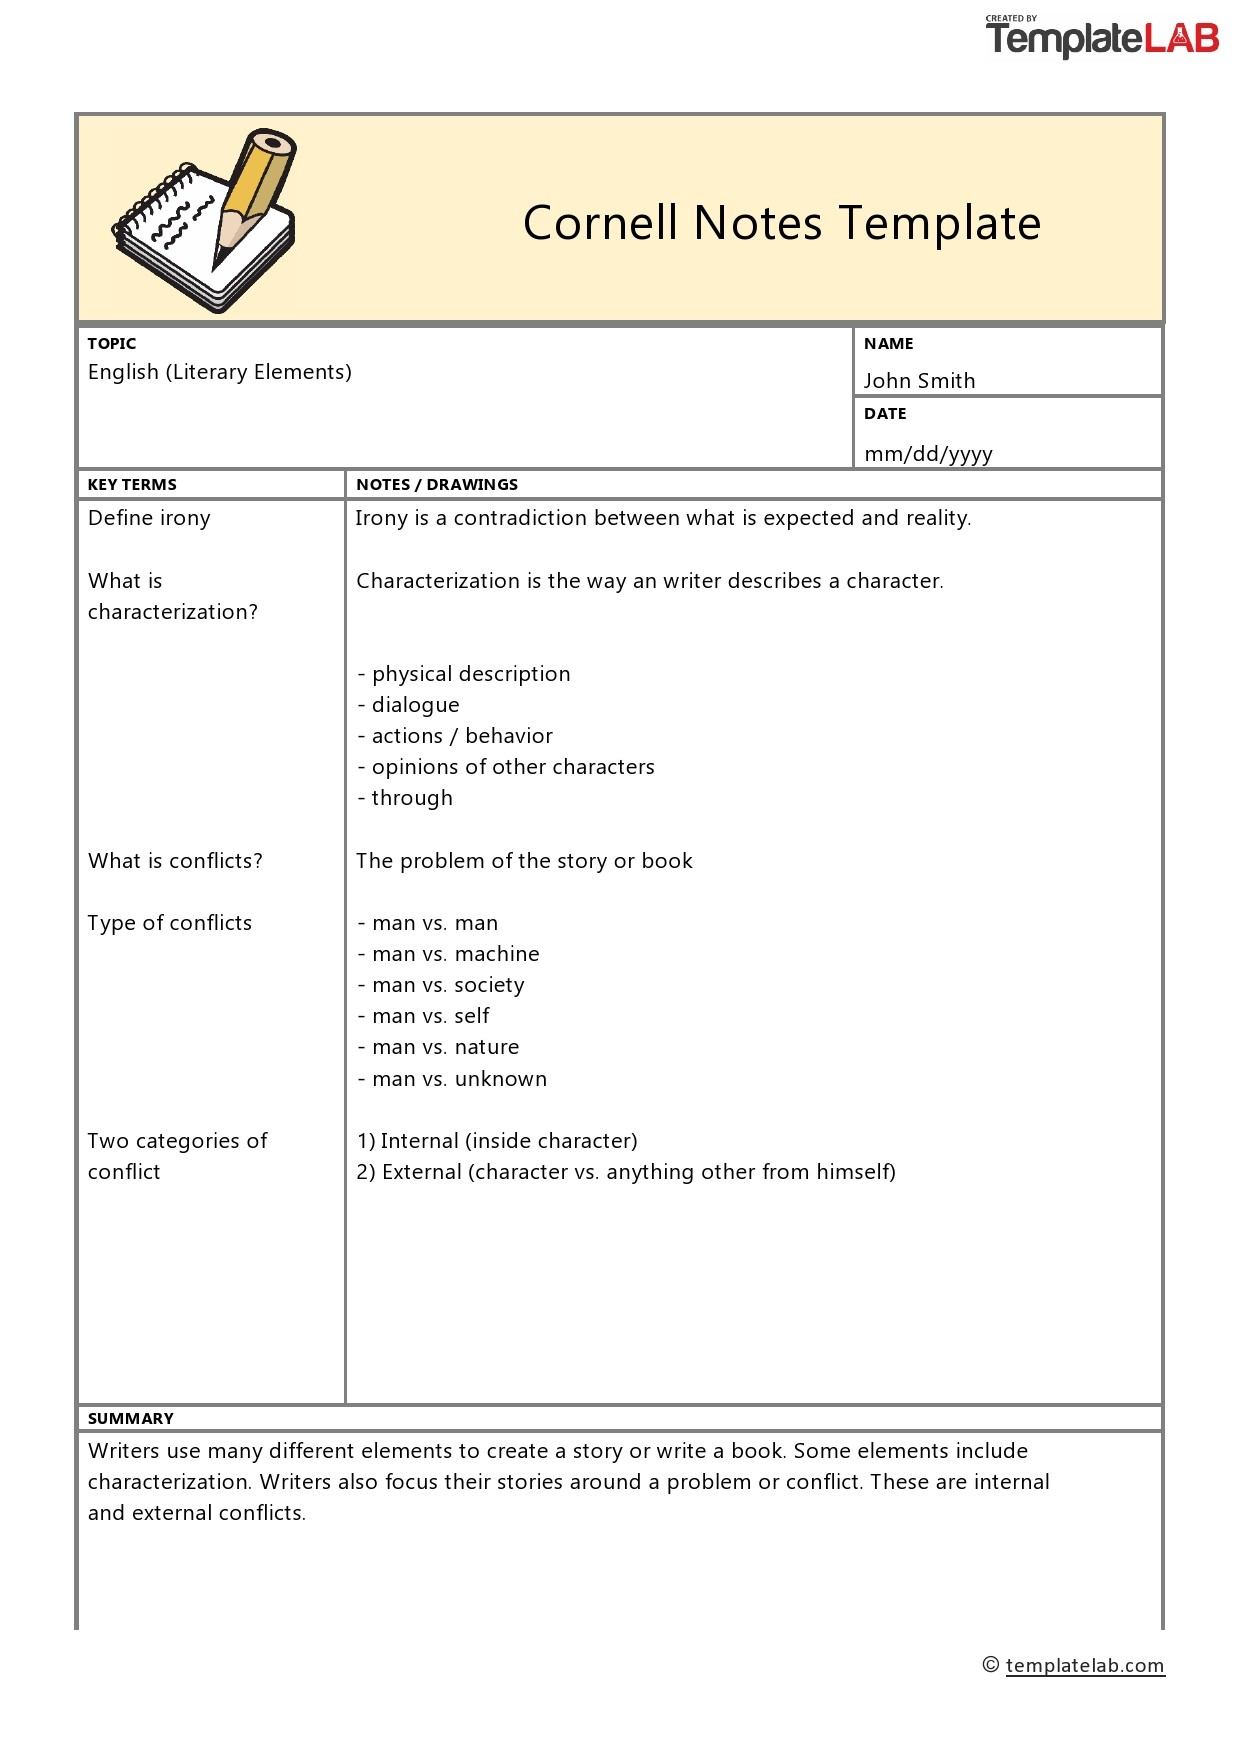 Free Cornell Notes Template 4 - TemplateLab